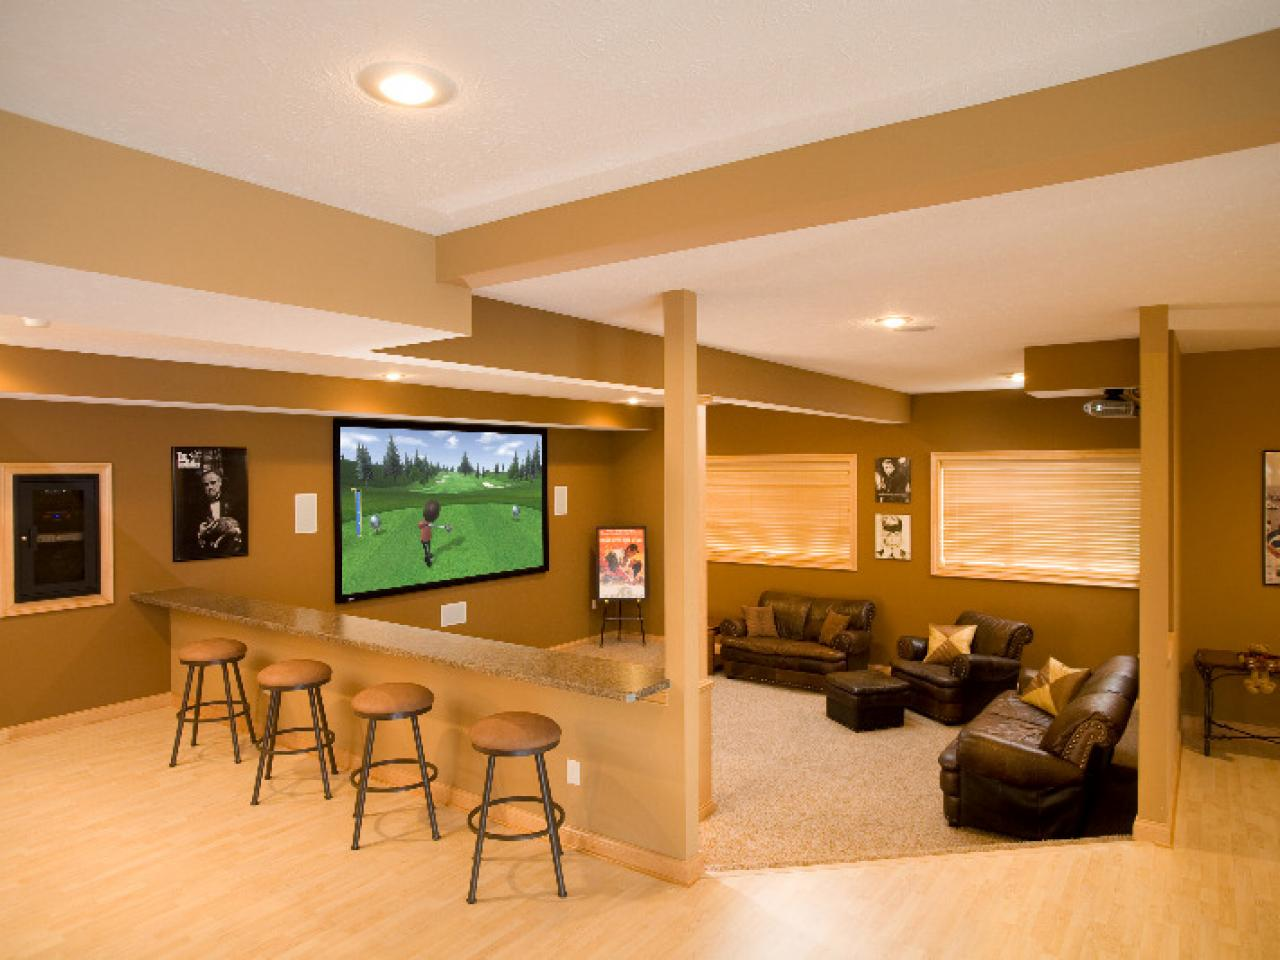 Entertainment Room Ideas home theater design ideas: pictures, tips & options | hgtv